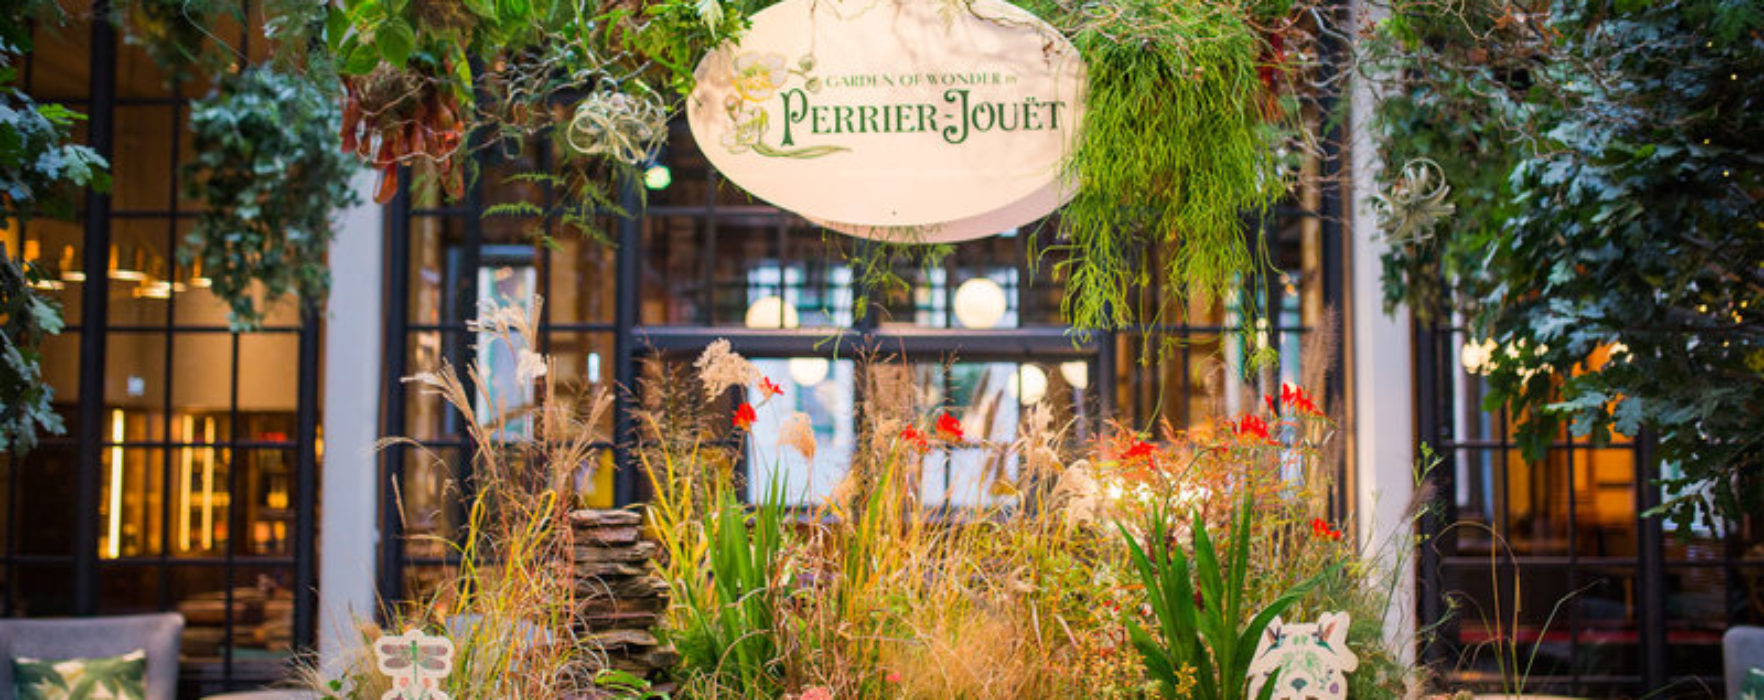 Perrier-Jouet Brings Nature To Life In A New Interactive Garden Of Wonder At The Refuge